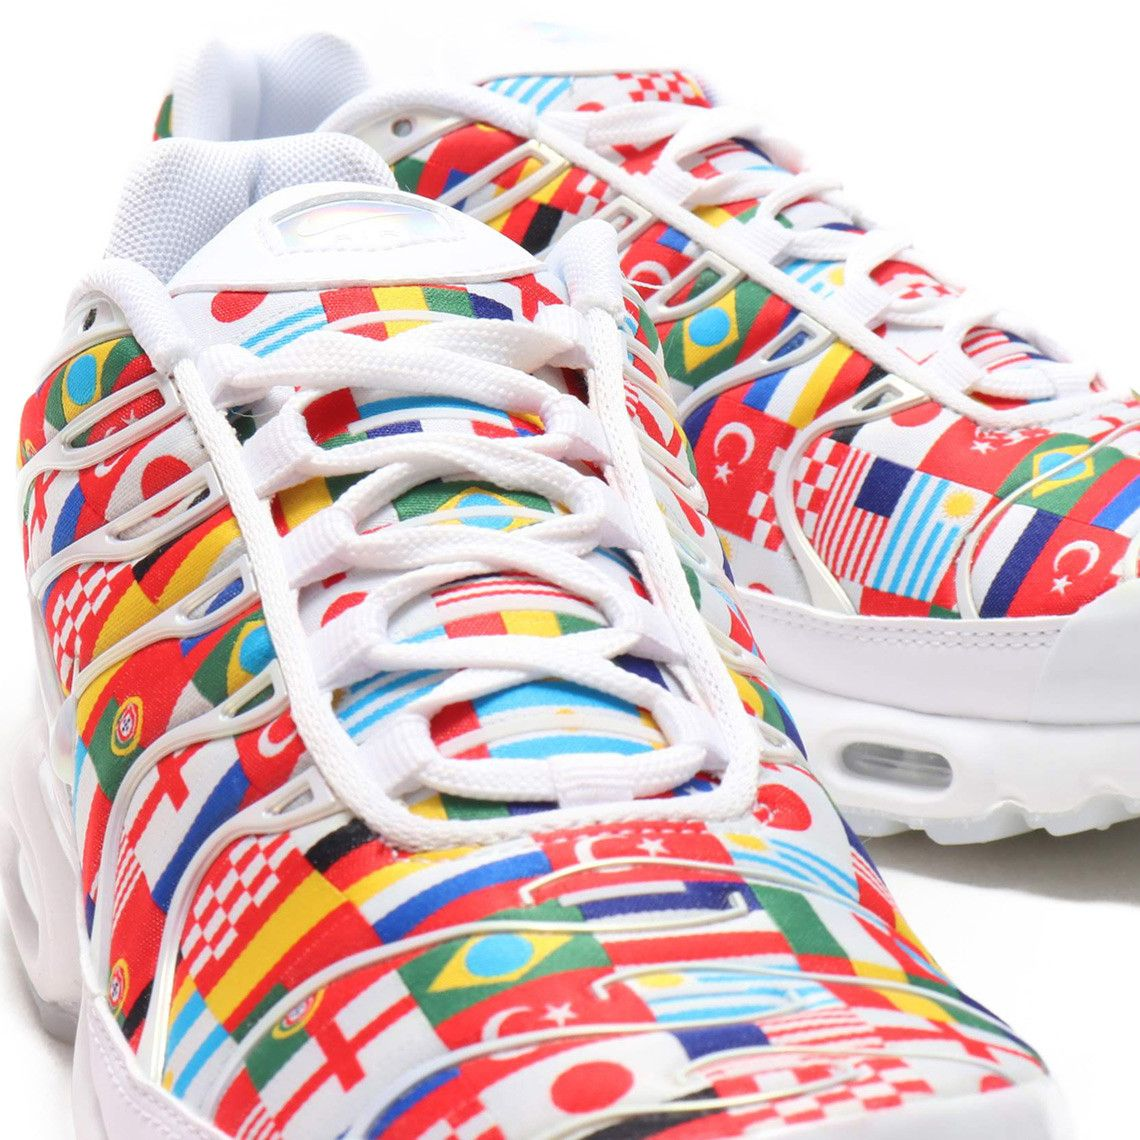 """d49817321d2f06 A Detailed Look At The Nike Air Max Plus NIC """"International Flag ..."""